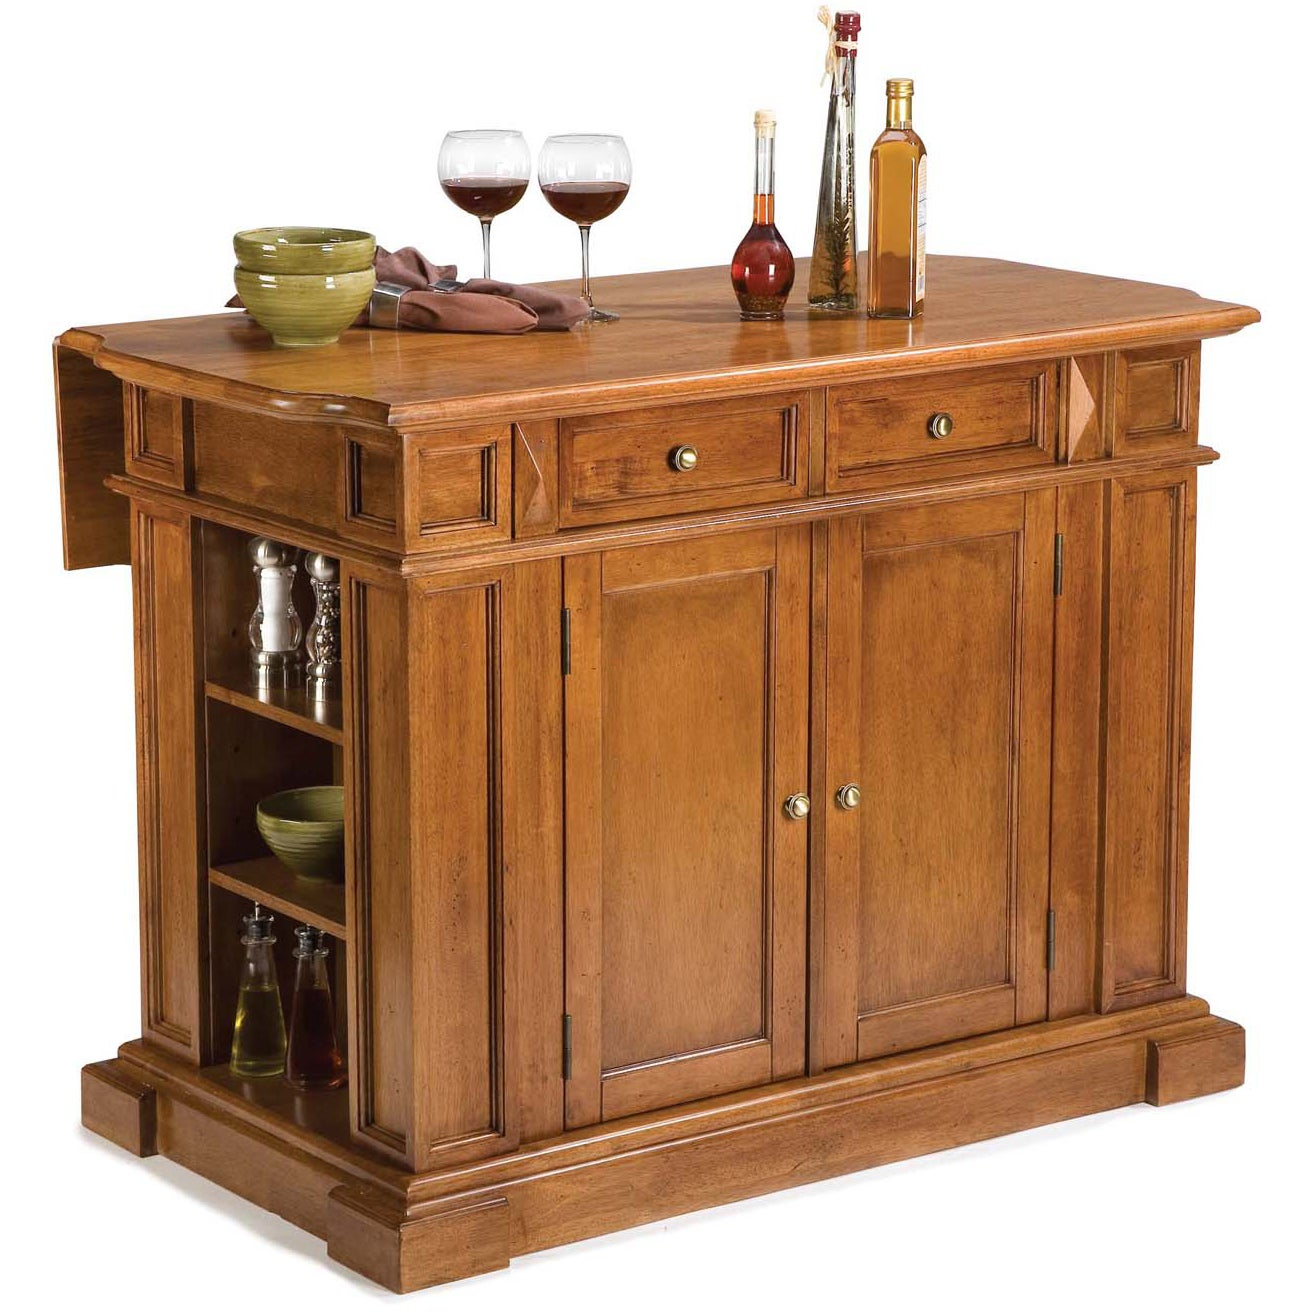 Shop Gracewood Hollow Capote Distressed Oak Kitchen Island Free - Overstock kitchen island